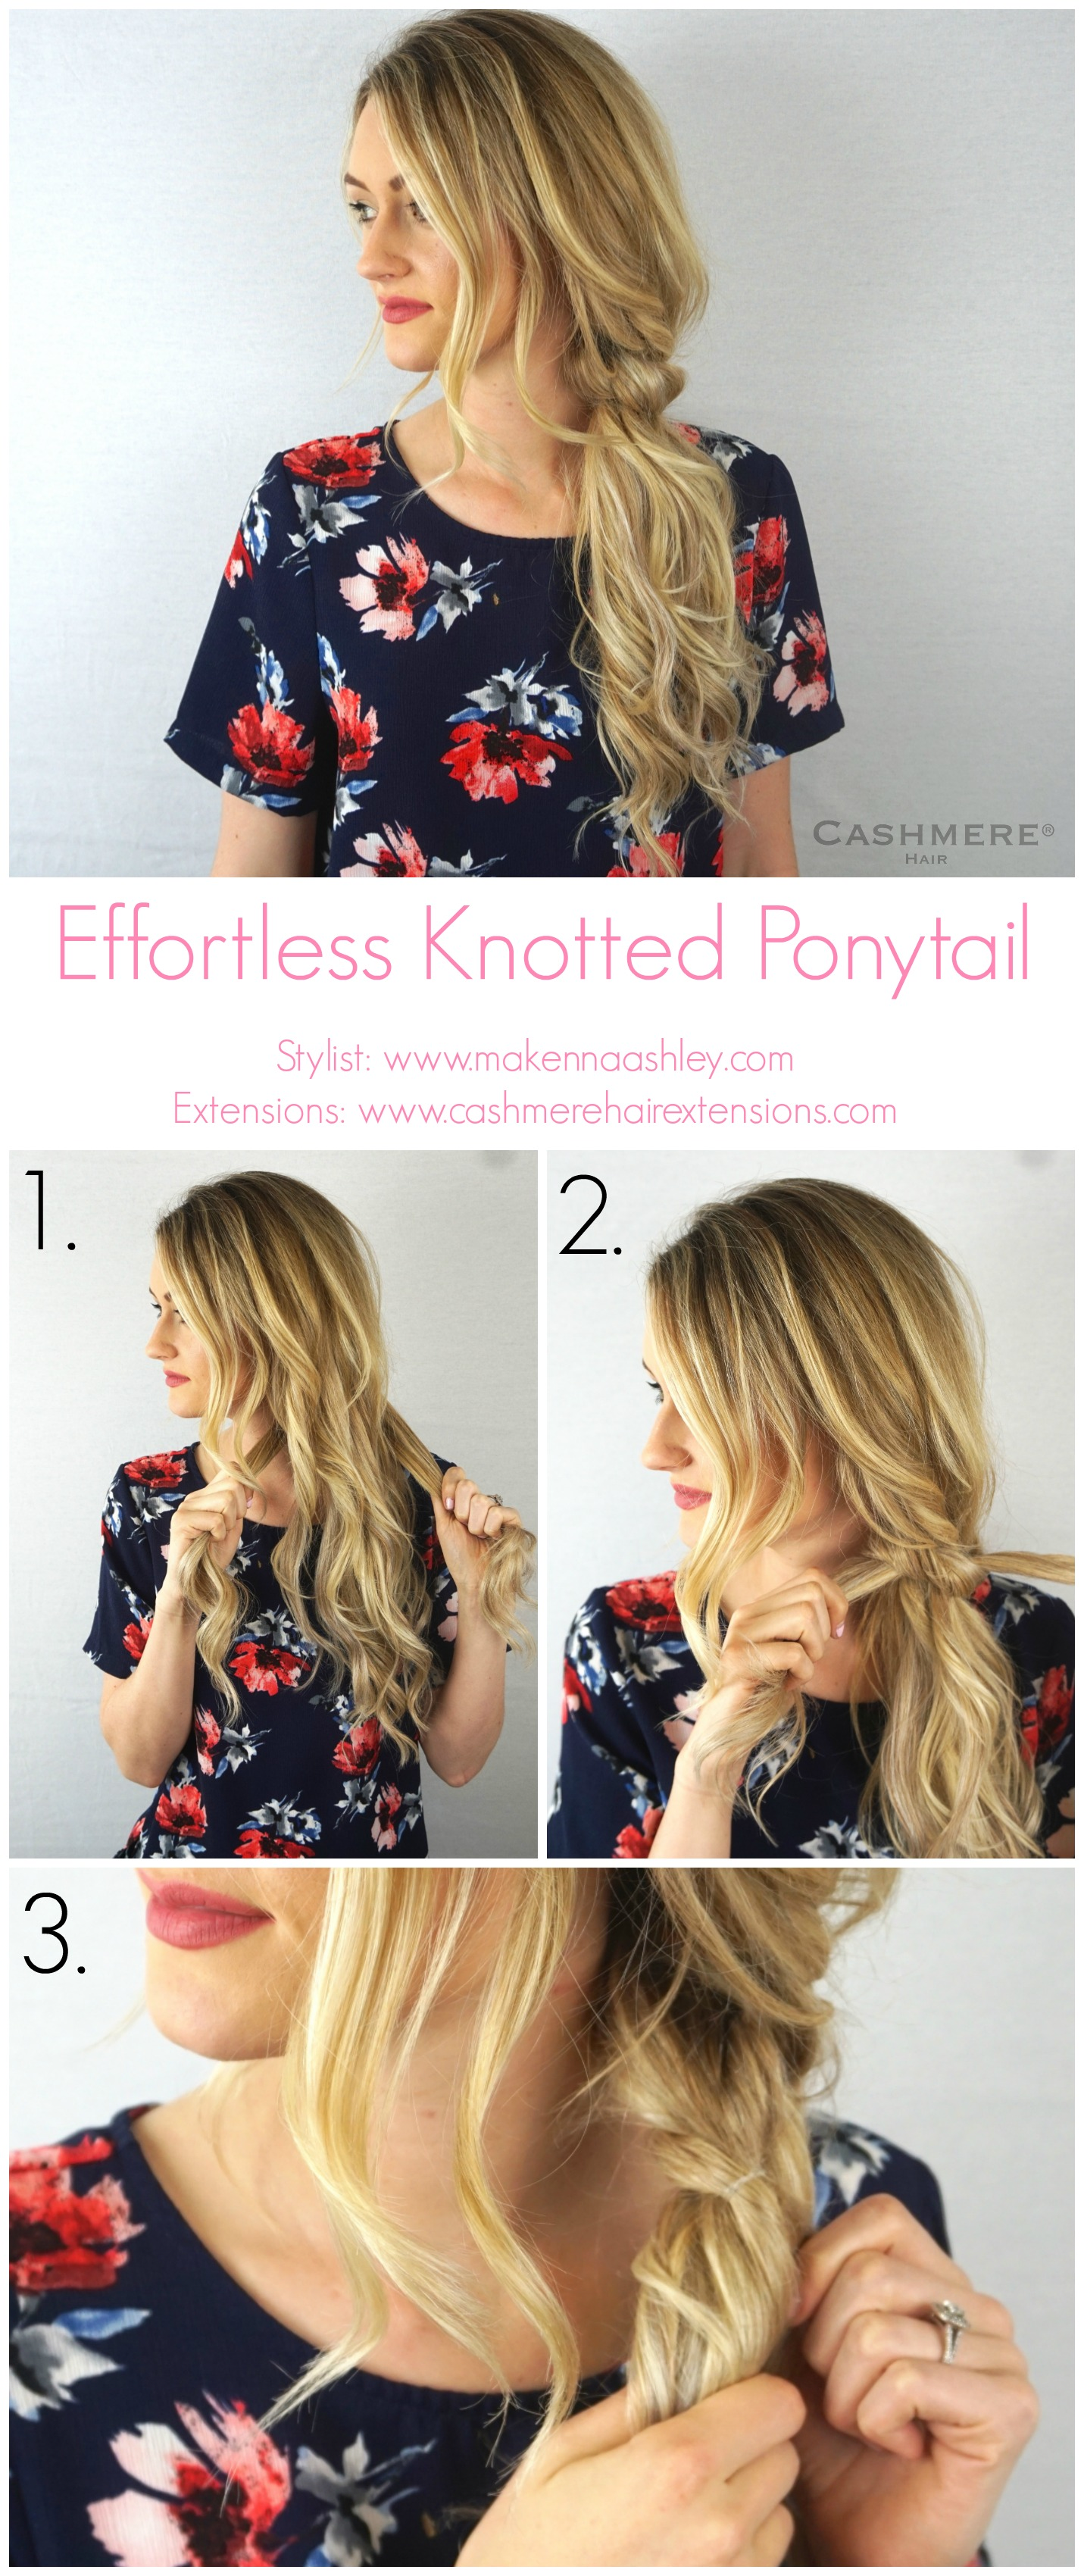 Effortless Knotted Ponytail Tutorial